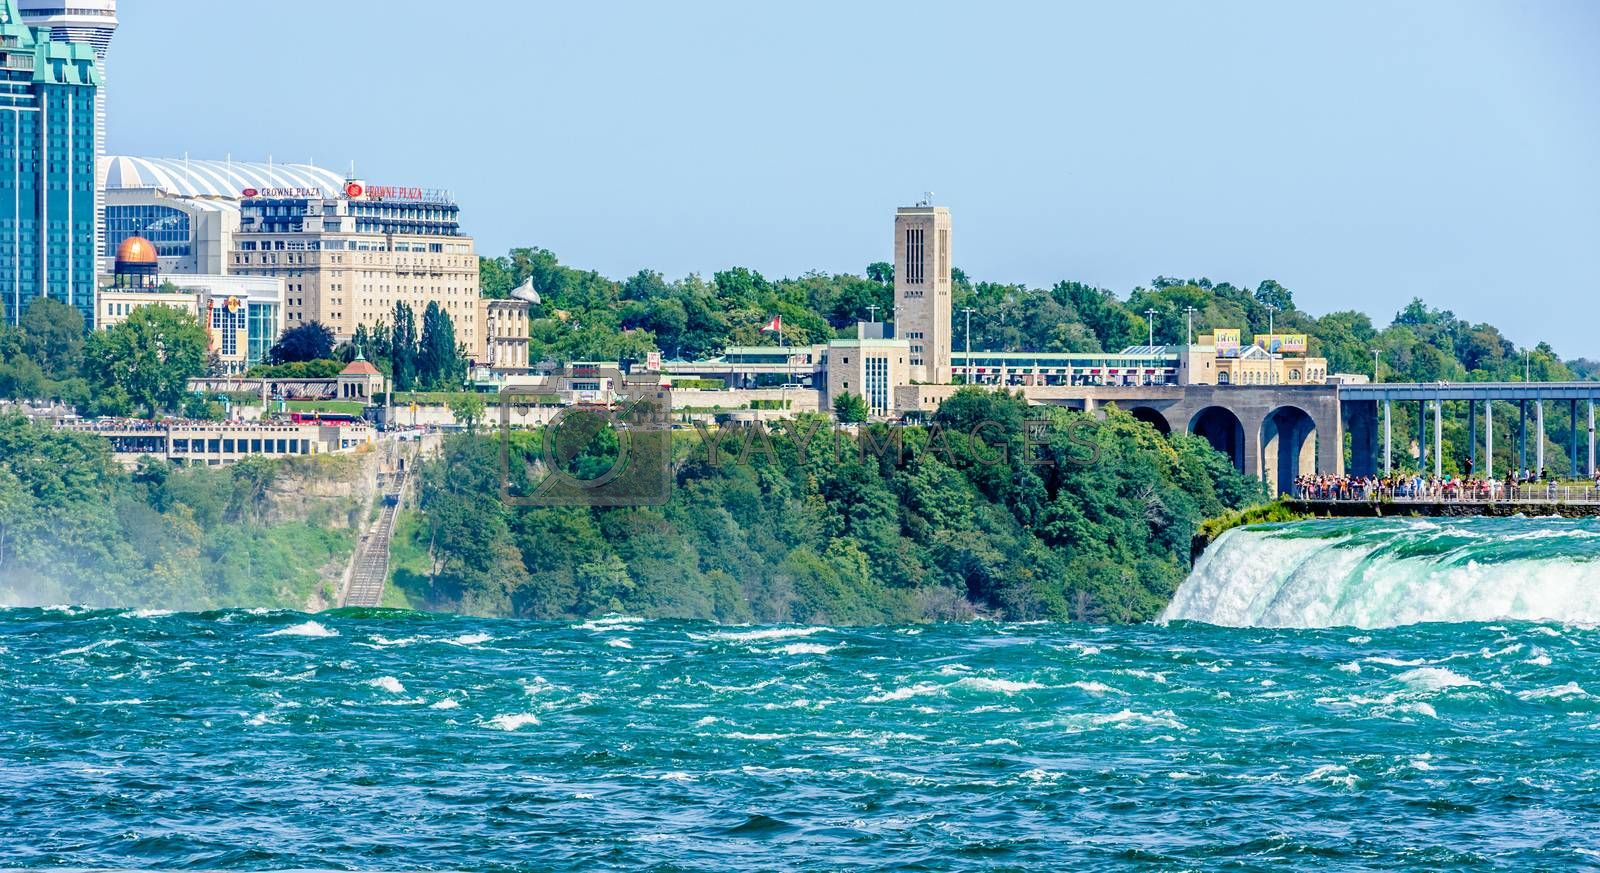 NIAGARA FALLS, CANADA - AUGUST 27, 2017: Tourists view the Horseshoe Falls from a platform on the American side, opposite the border crossing and city on the Canadian side.